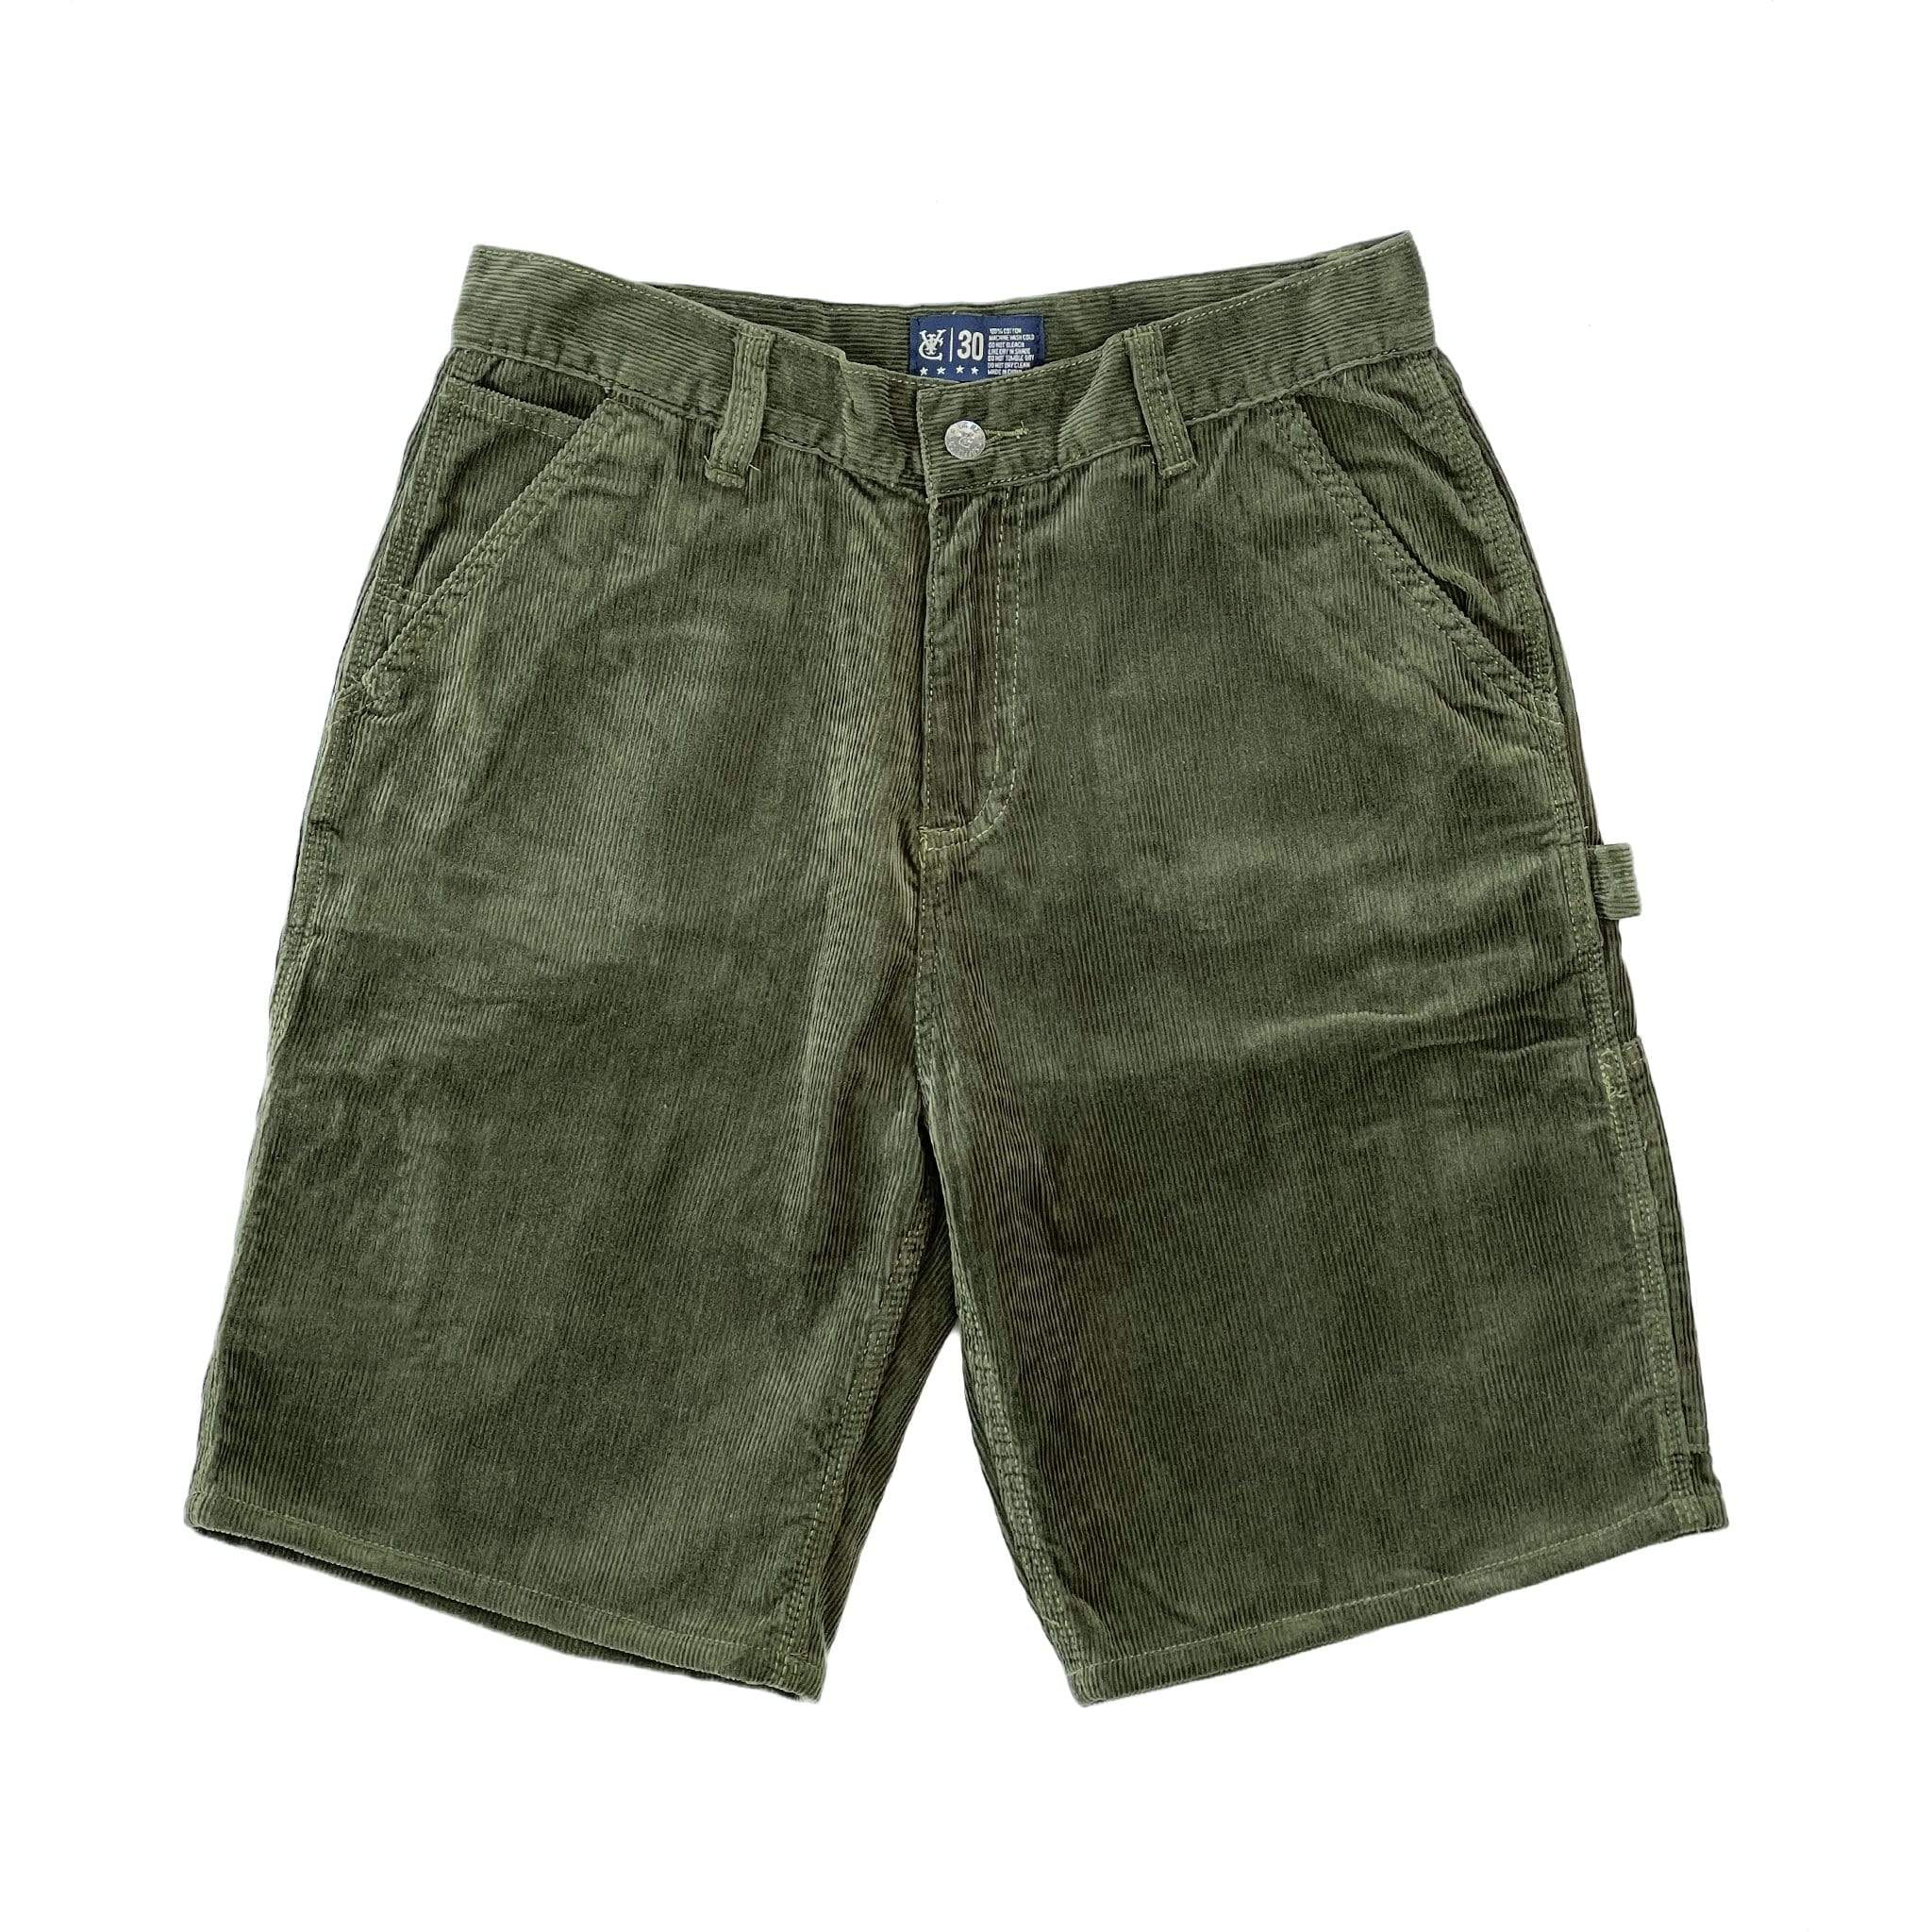 Premium quality corduroy carpenter shorts by New Zealand skate and streetwear clothing label VIC Apparel. Loose fit. Featuring utility pockets, a traditional hammer loop, and triple needle contrast stitching with VIC label flag at the back right pocket. The 80s & 90s Classic vintage workwear cord work shorts style.